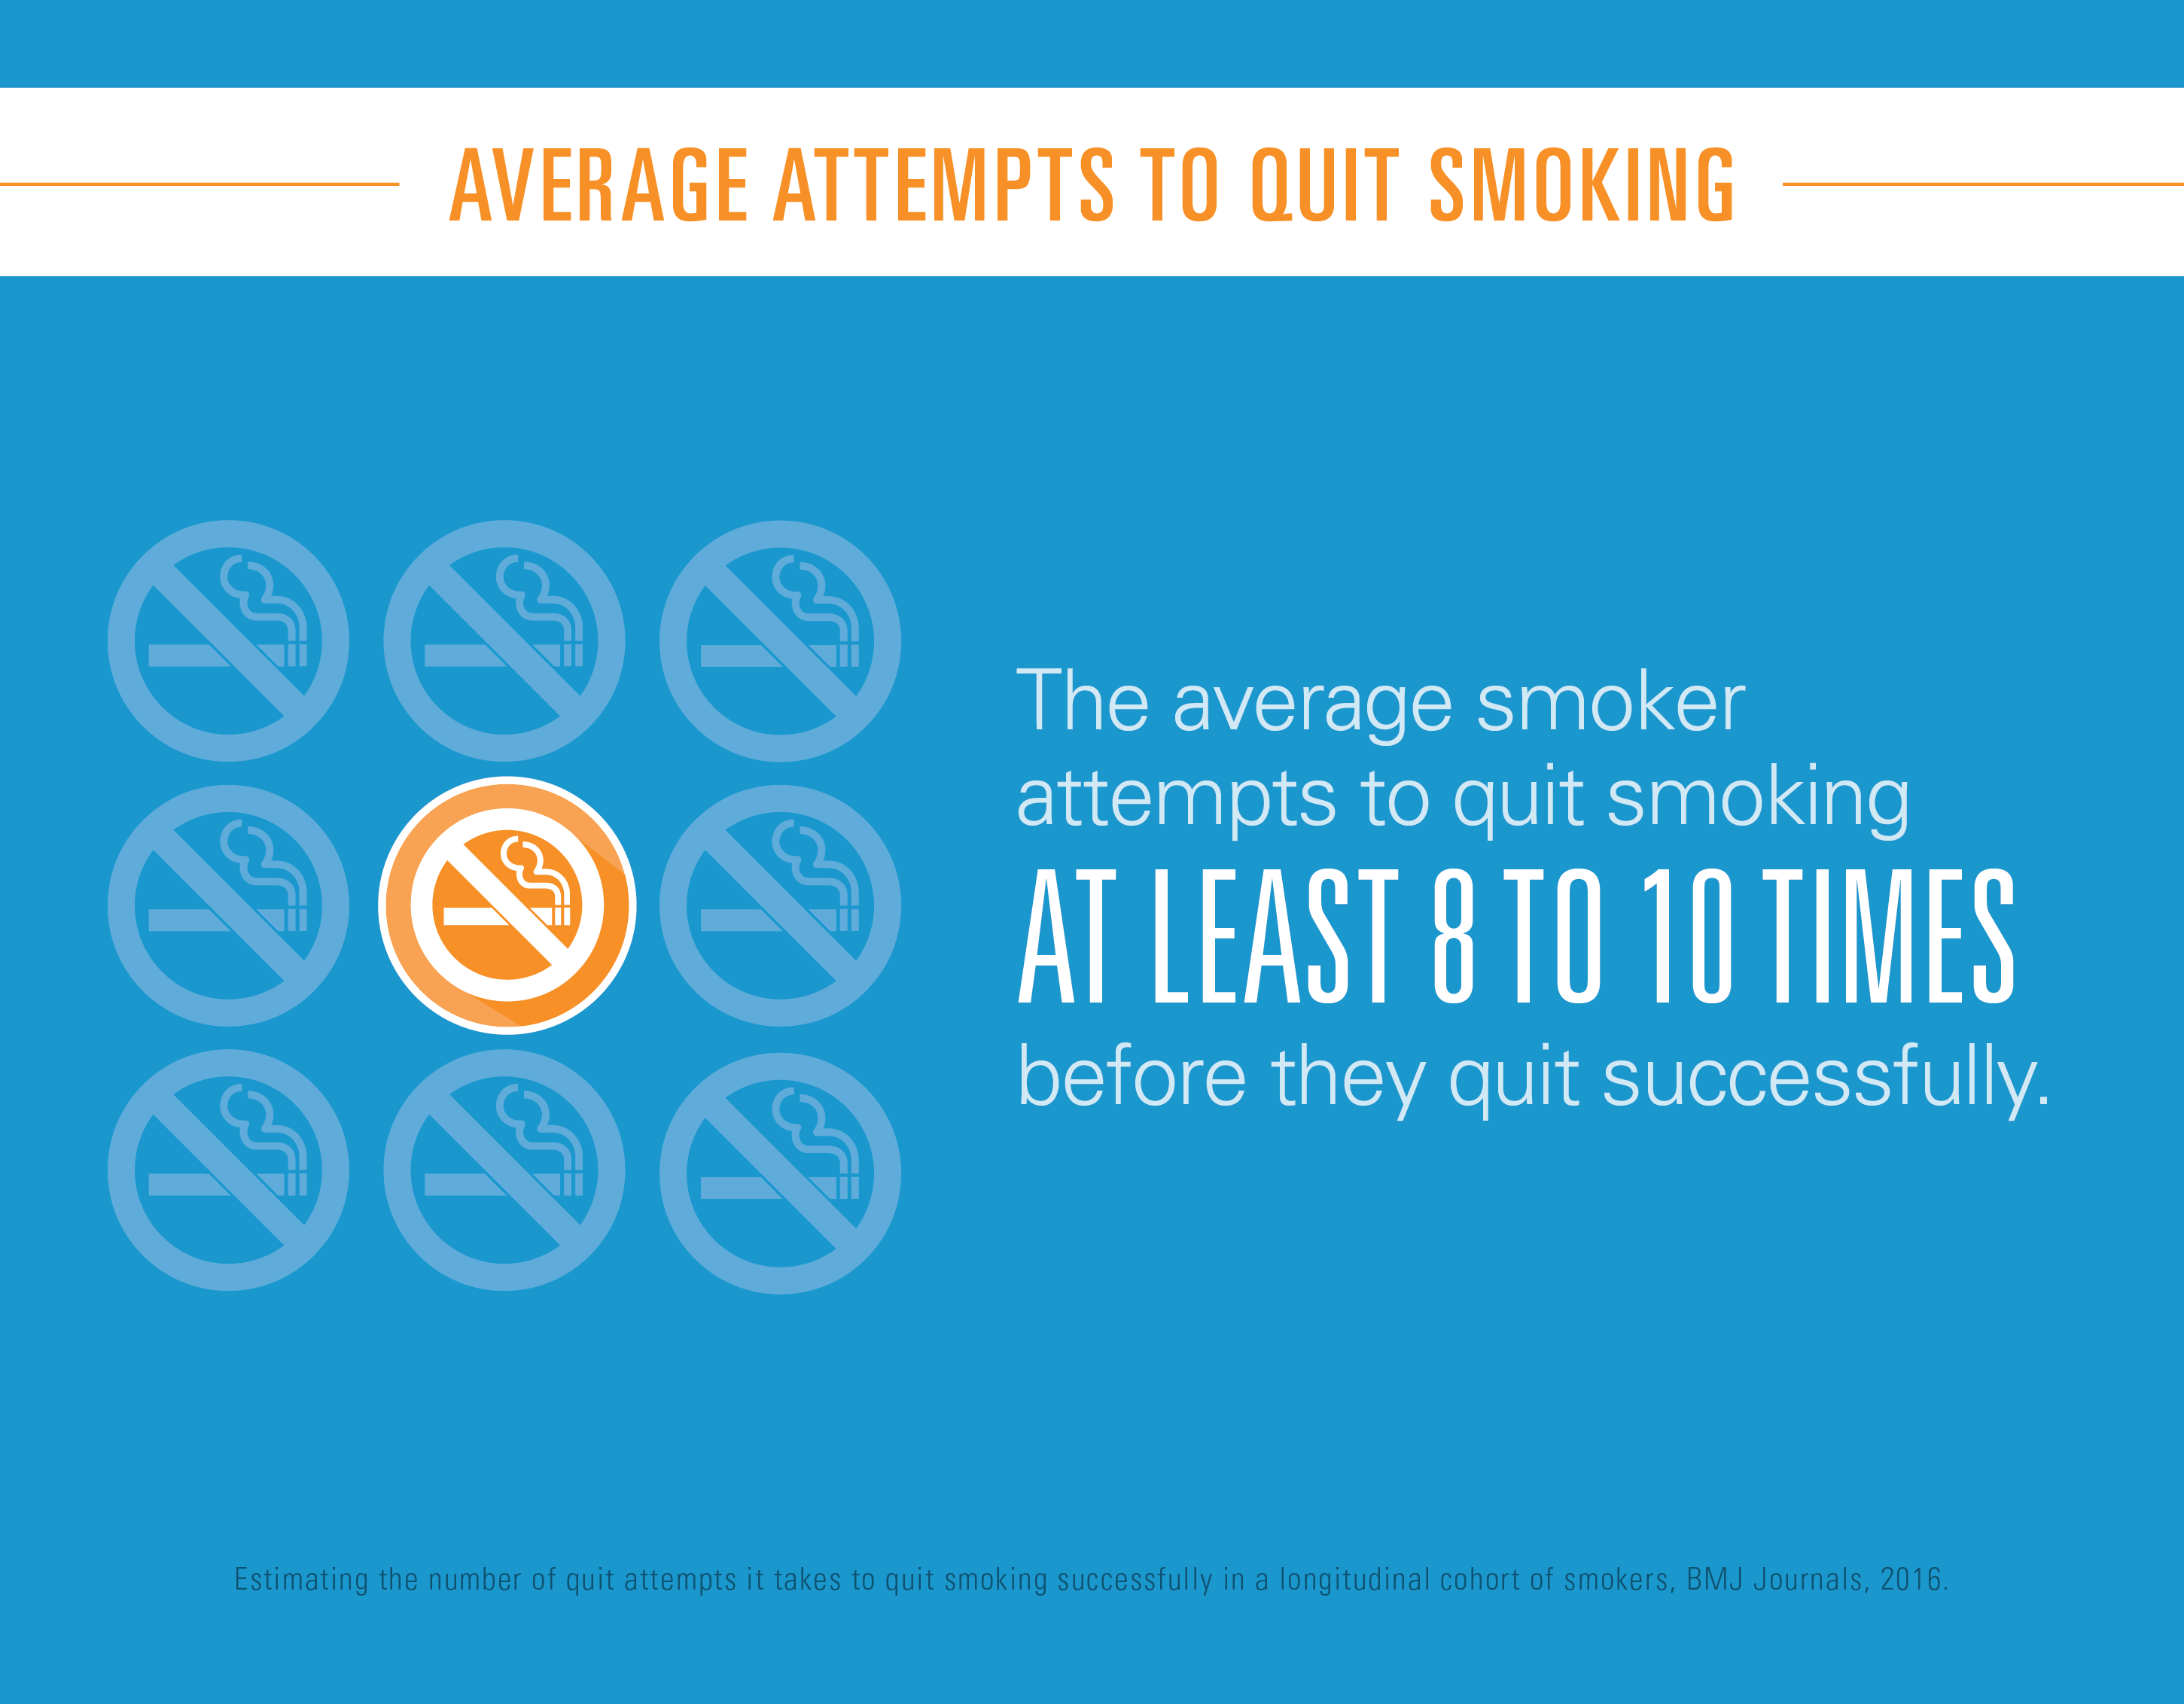 Average attempts to quit smoking